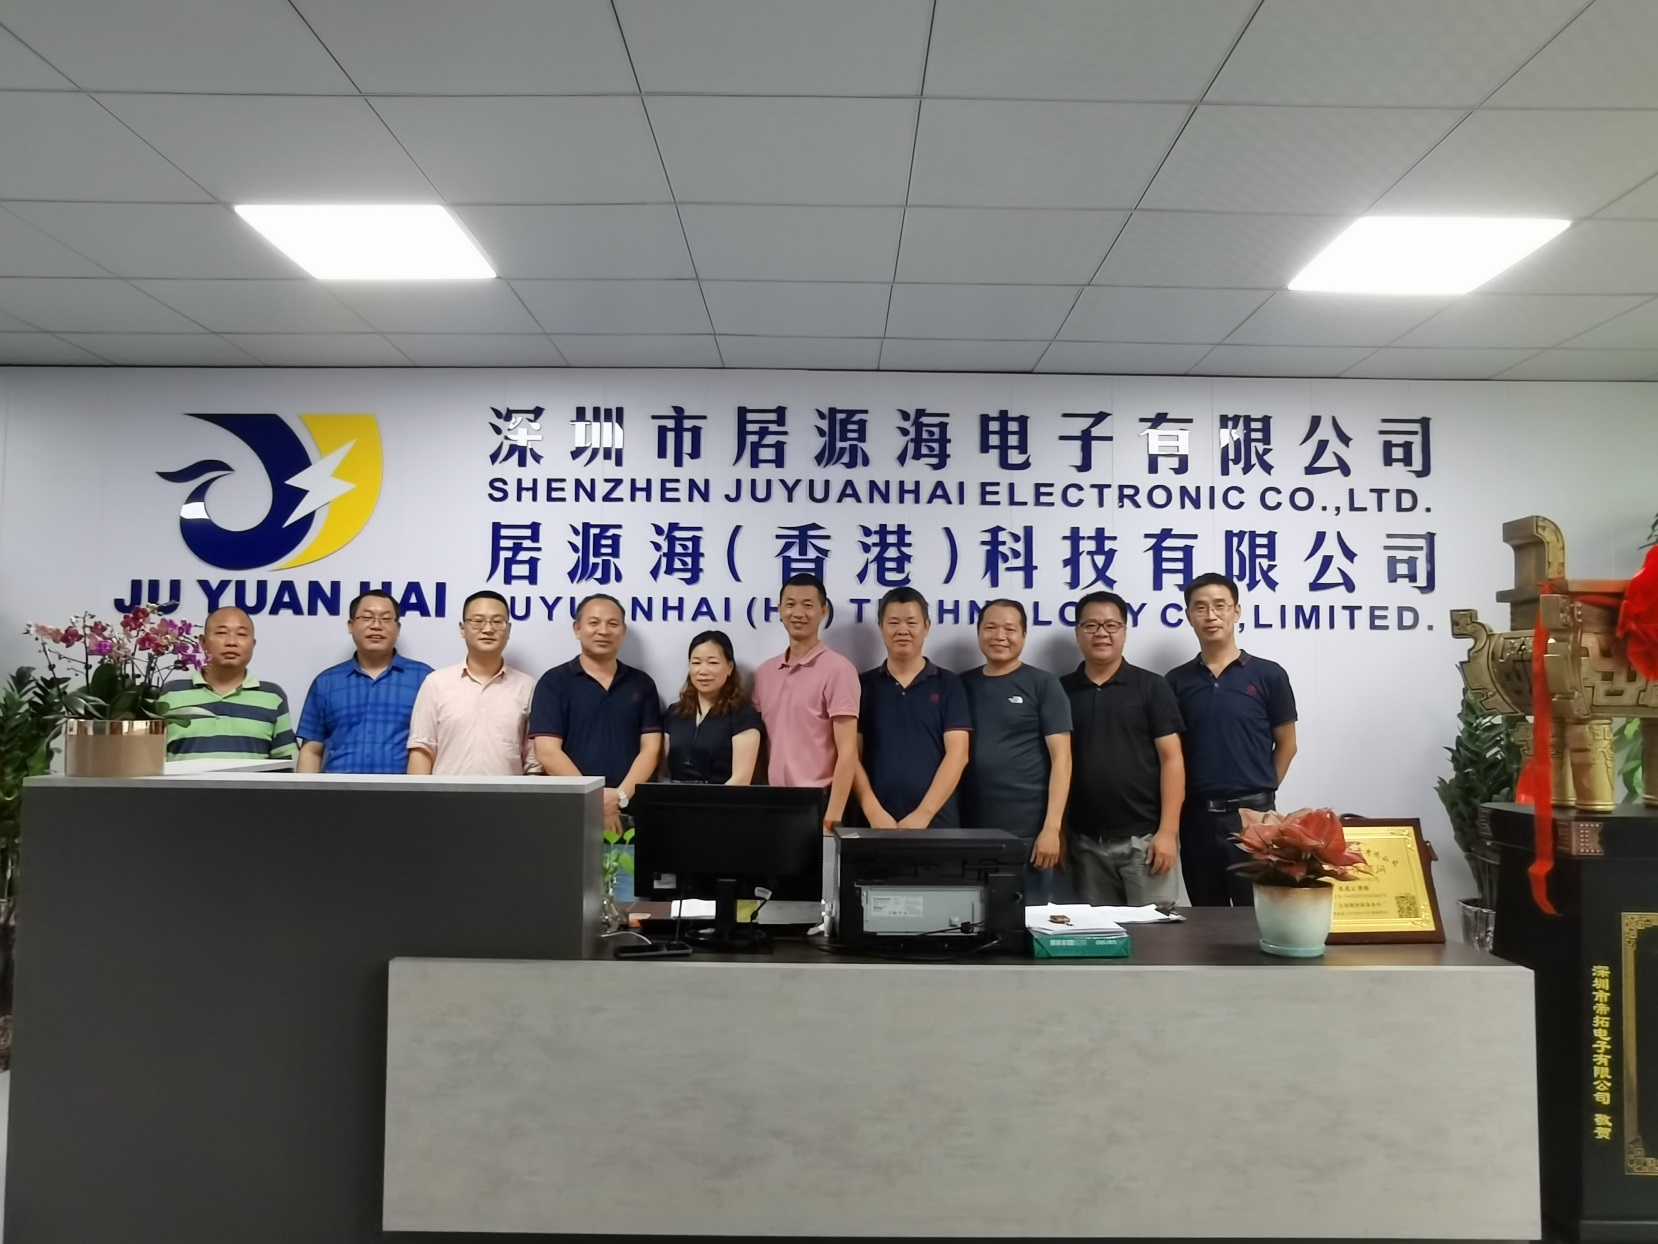 Shenzhen Juyuanhai Electronic Co., Ltd.